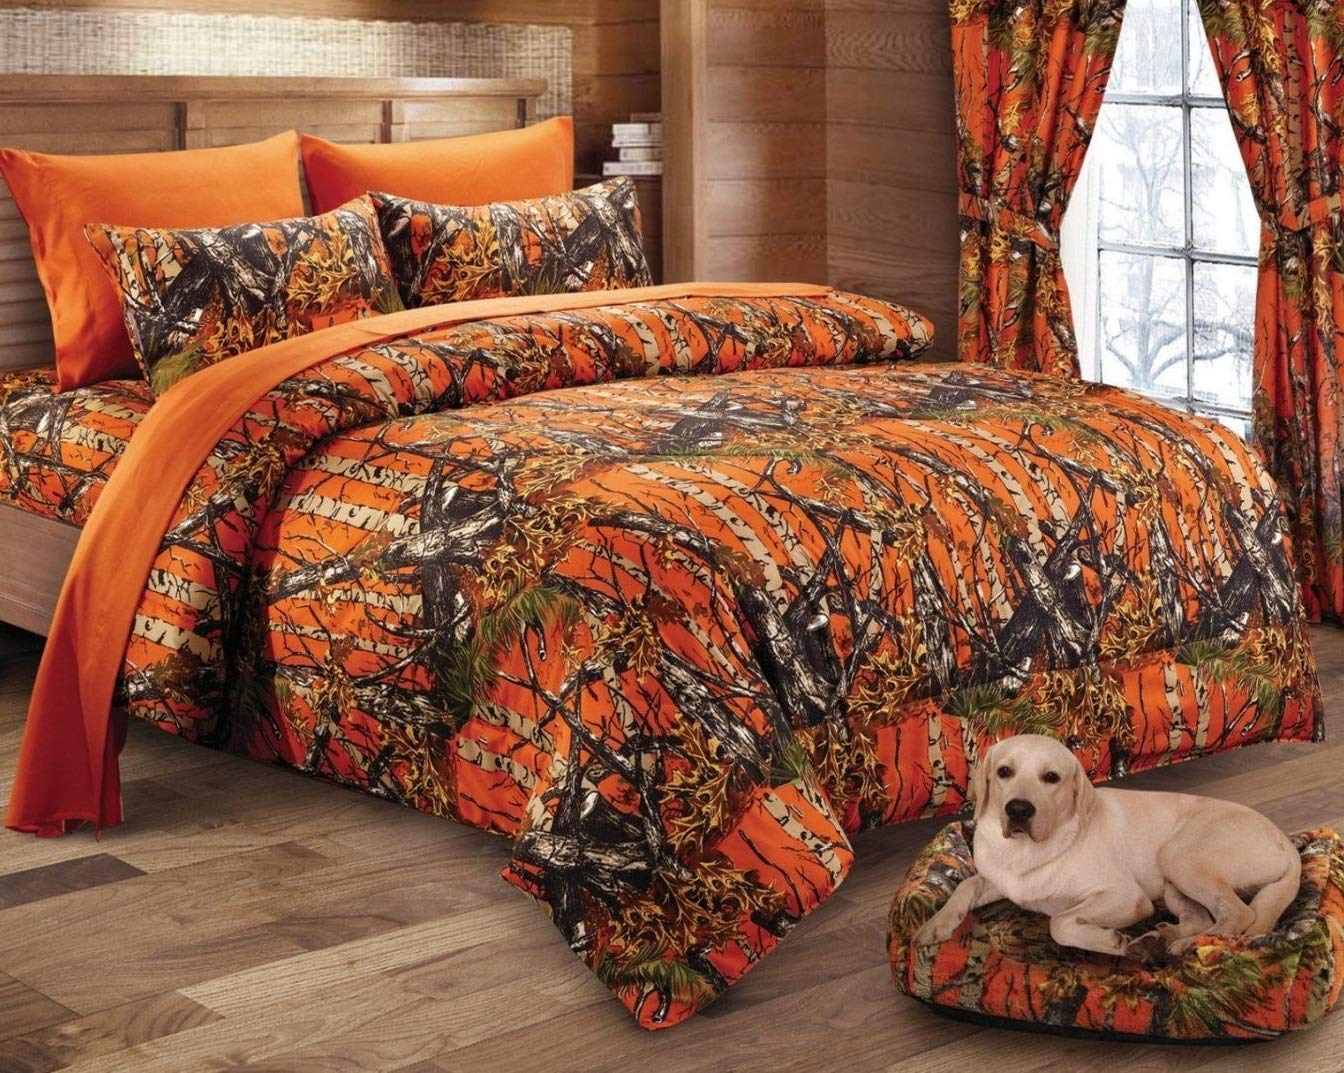 Regal Comfort The Woods Orange Camouflage 7pc King Size Bed Set ~ Comforter, Flat Sheet, Fitted Sheet and 4 Pillowcases ~ Camo Bedding